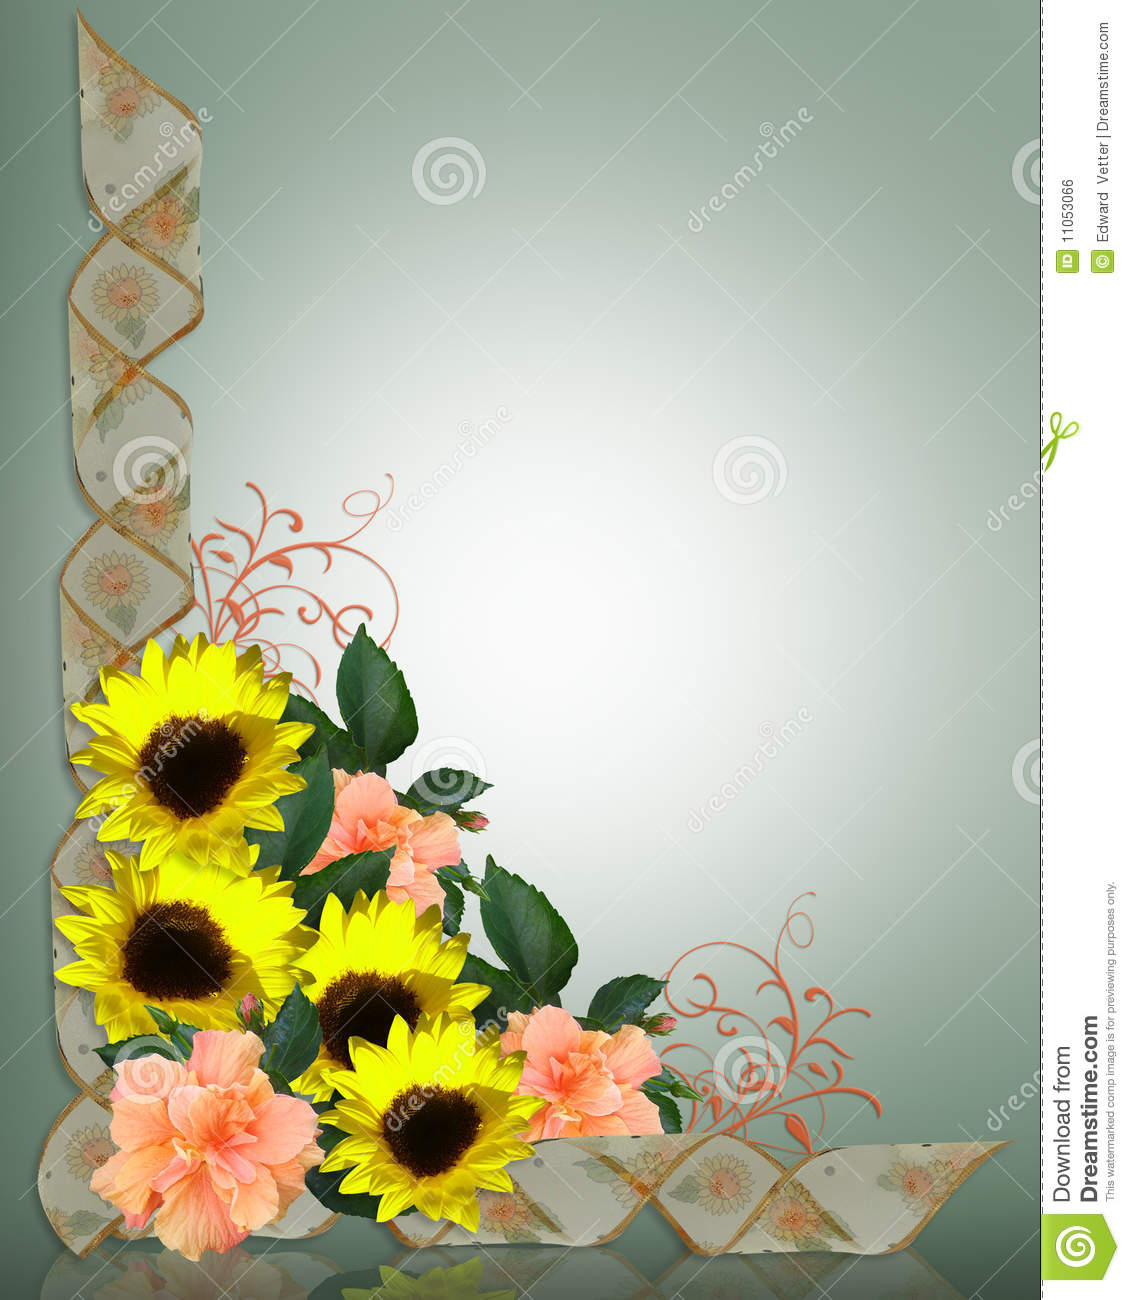 Sunflowers And Hibiscus Royalty Free Stock Image  Image